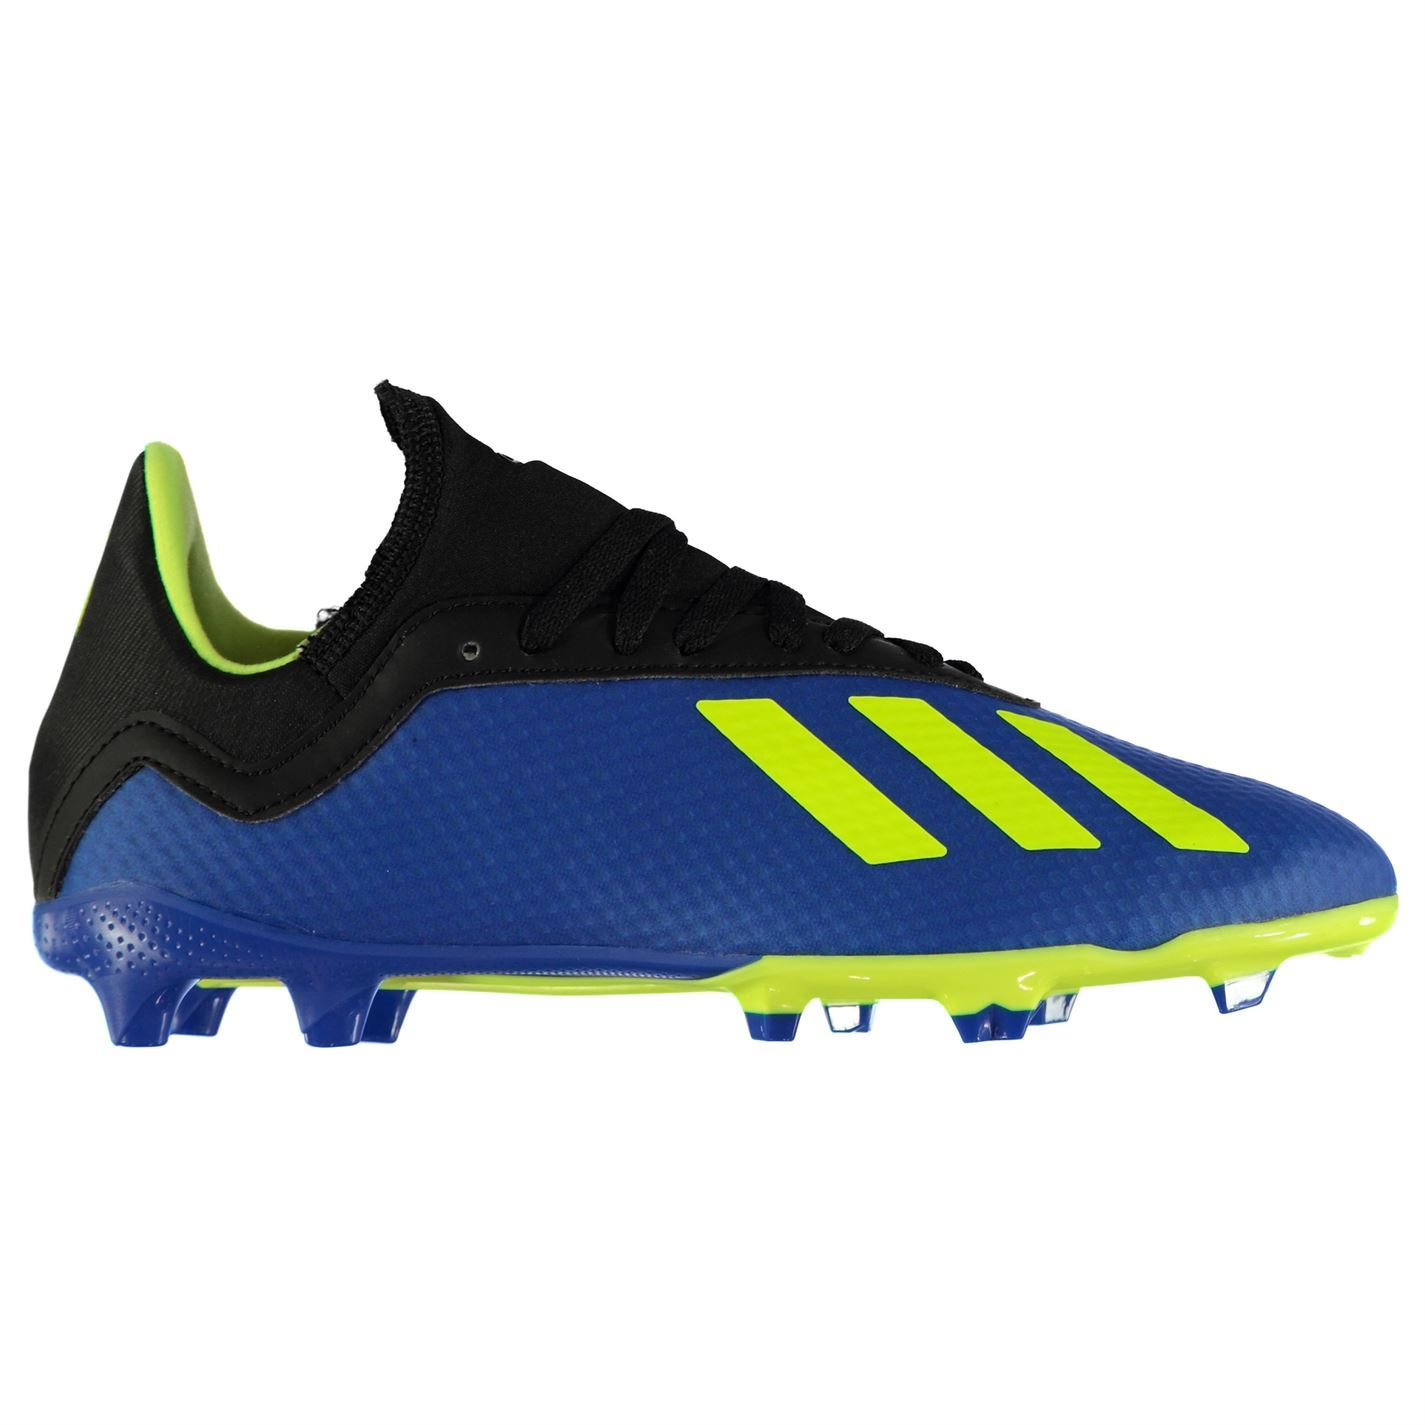 the latest 12317 4684a adidas Energy Mode X 18.3 Firm Ground Youngster Football Boots Childrens